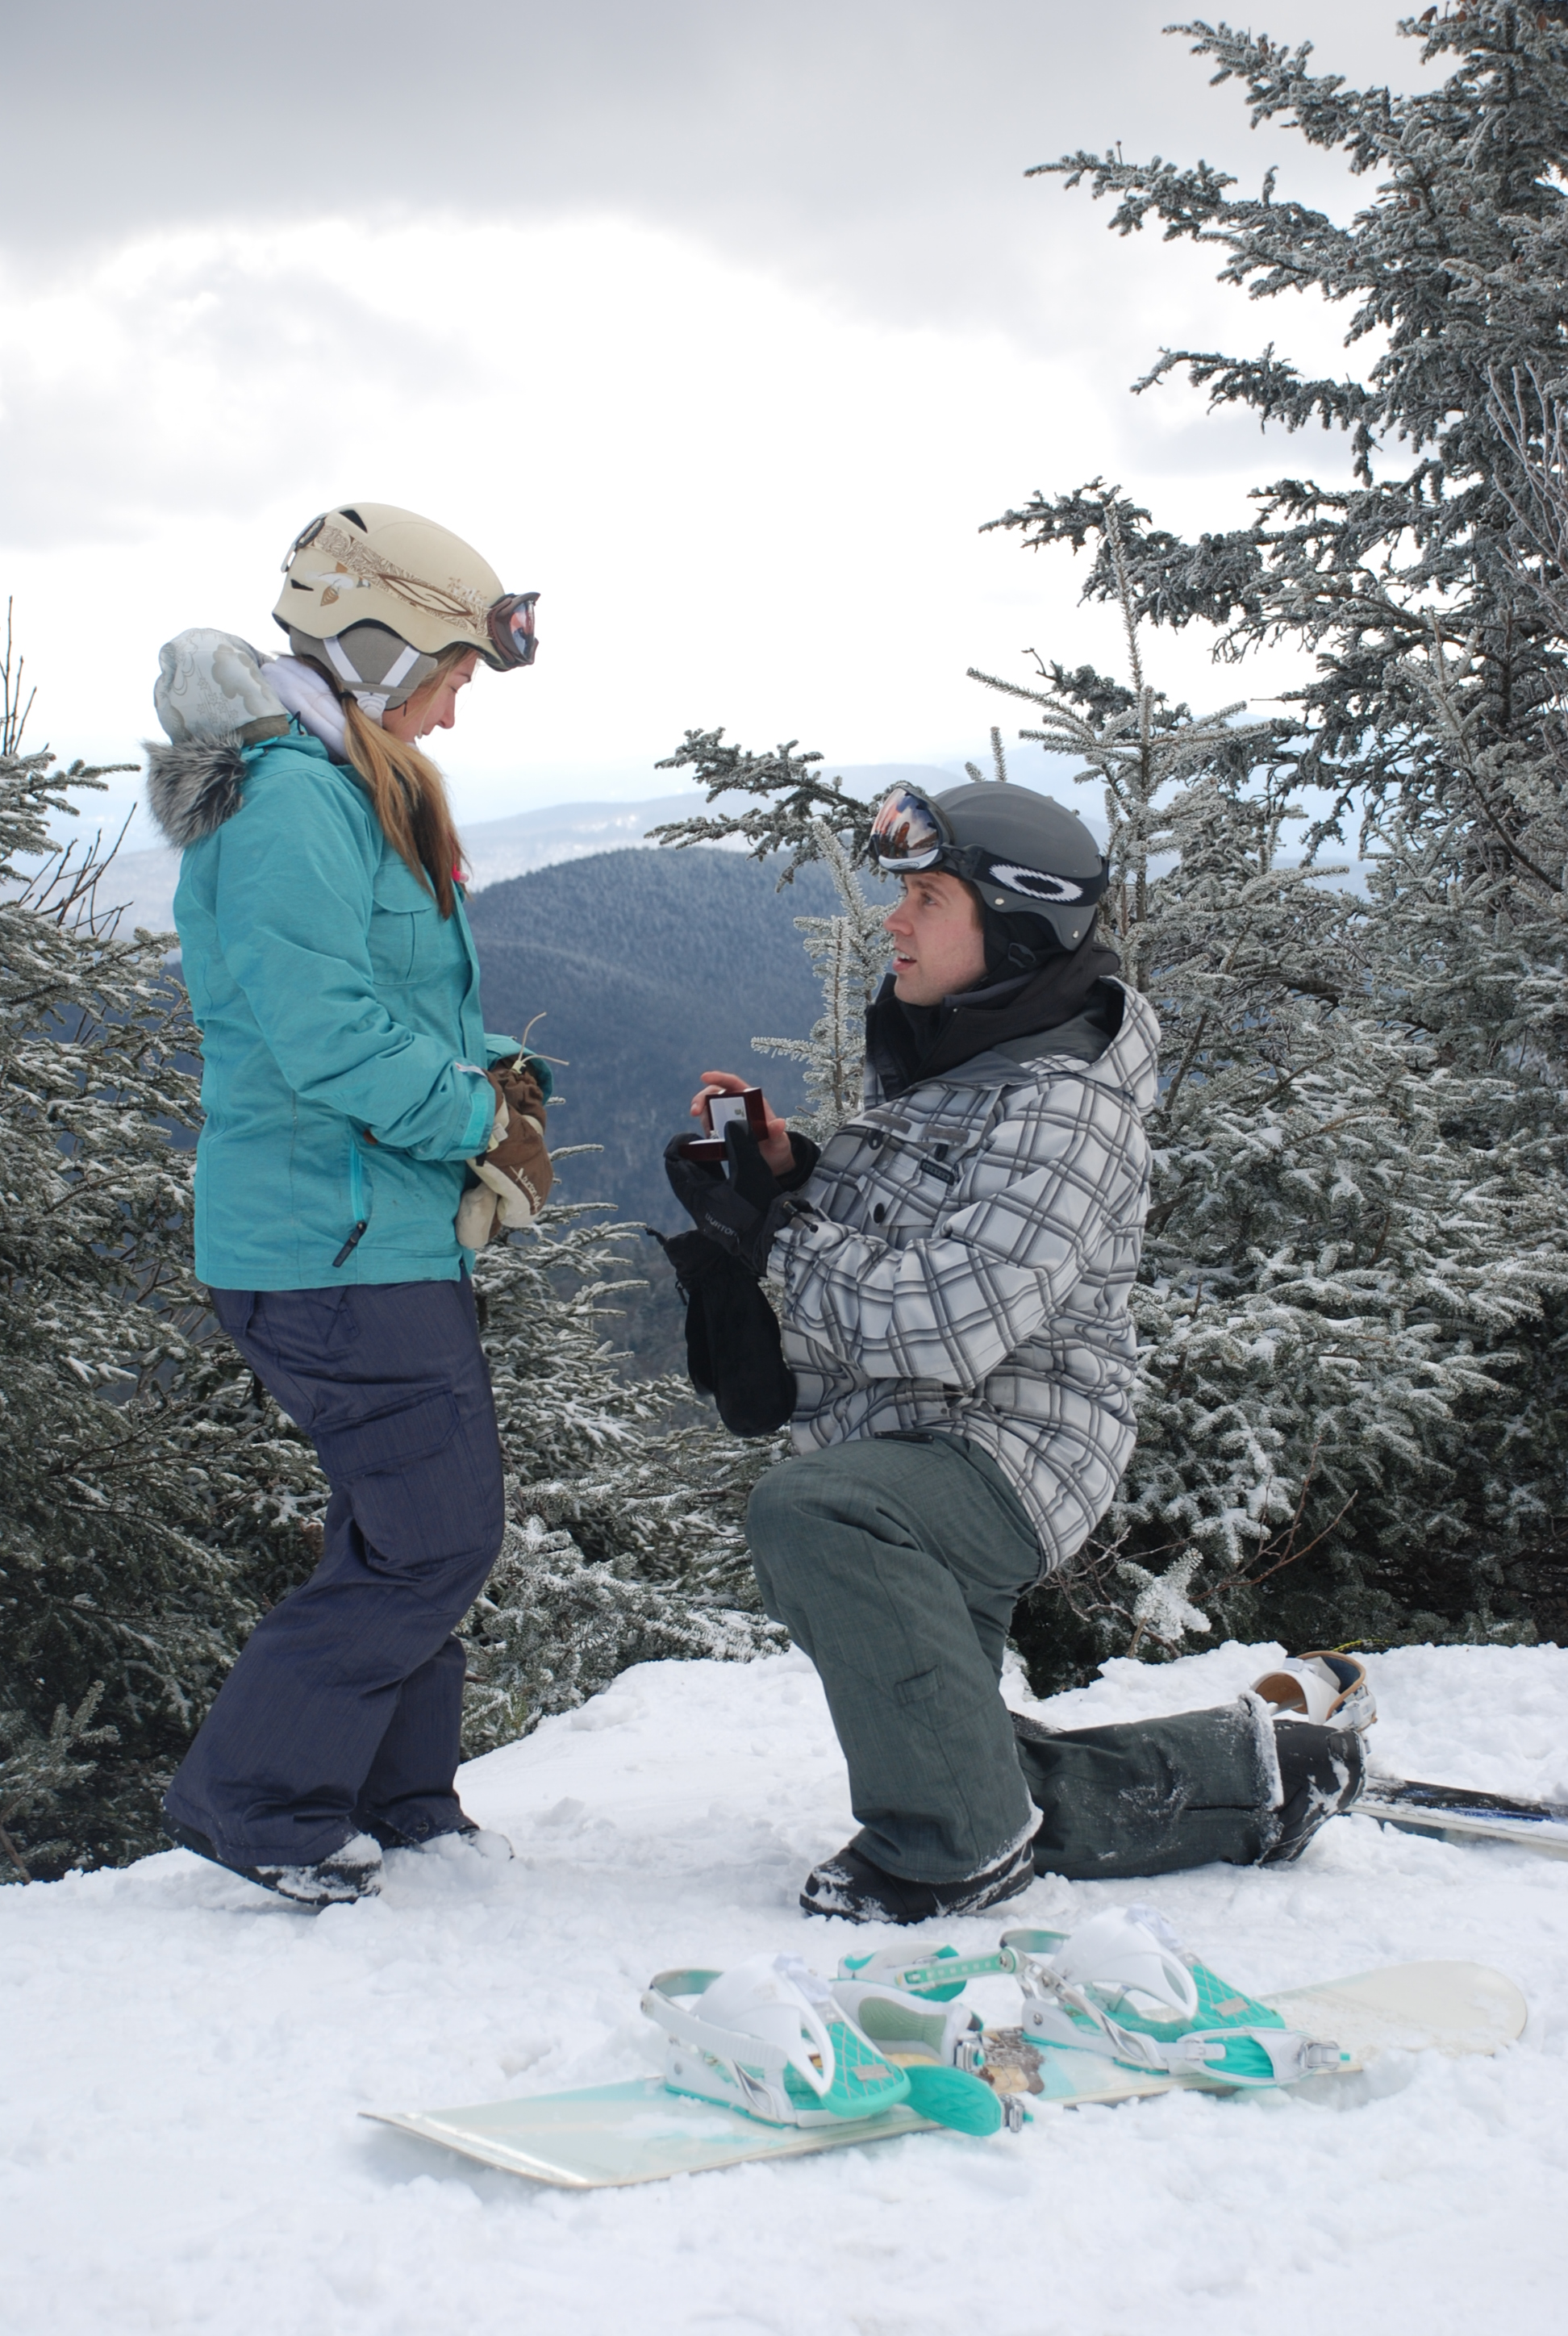 Image 2 of Kate and Chris | Snowboard Proposal